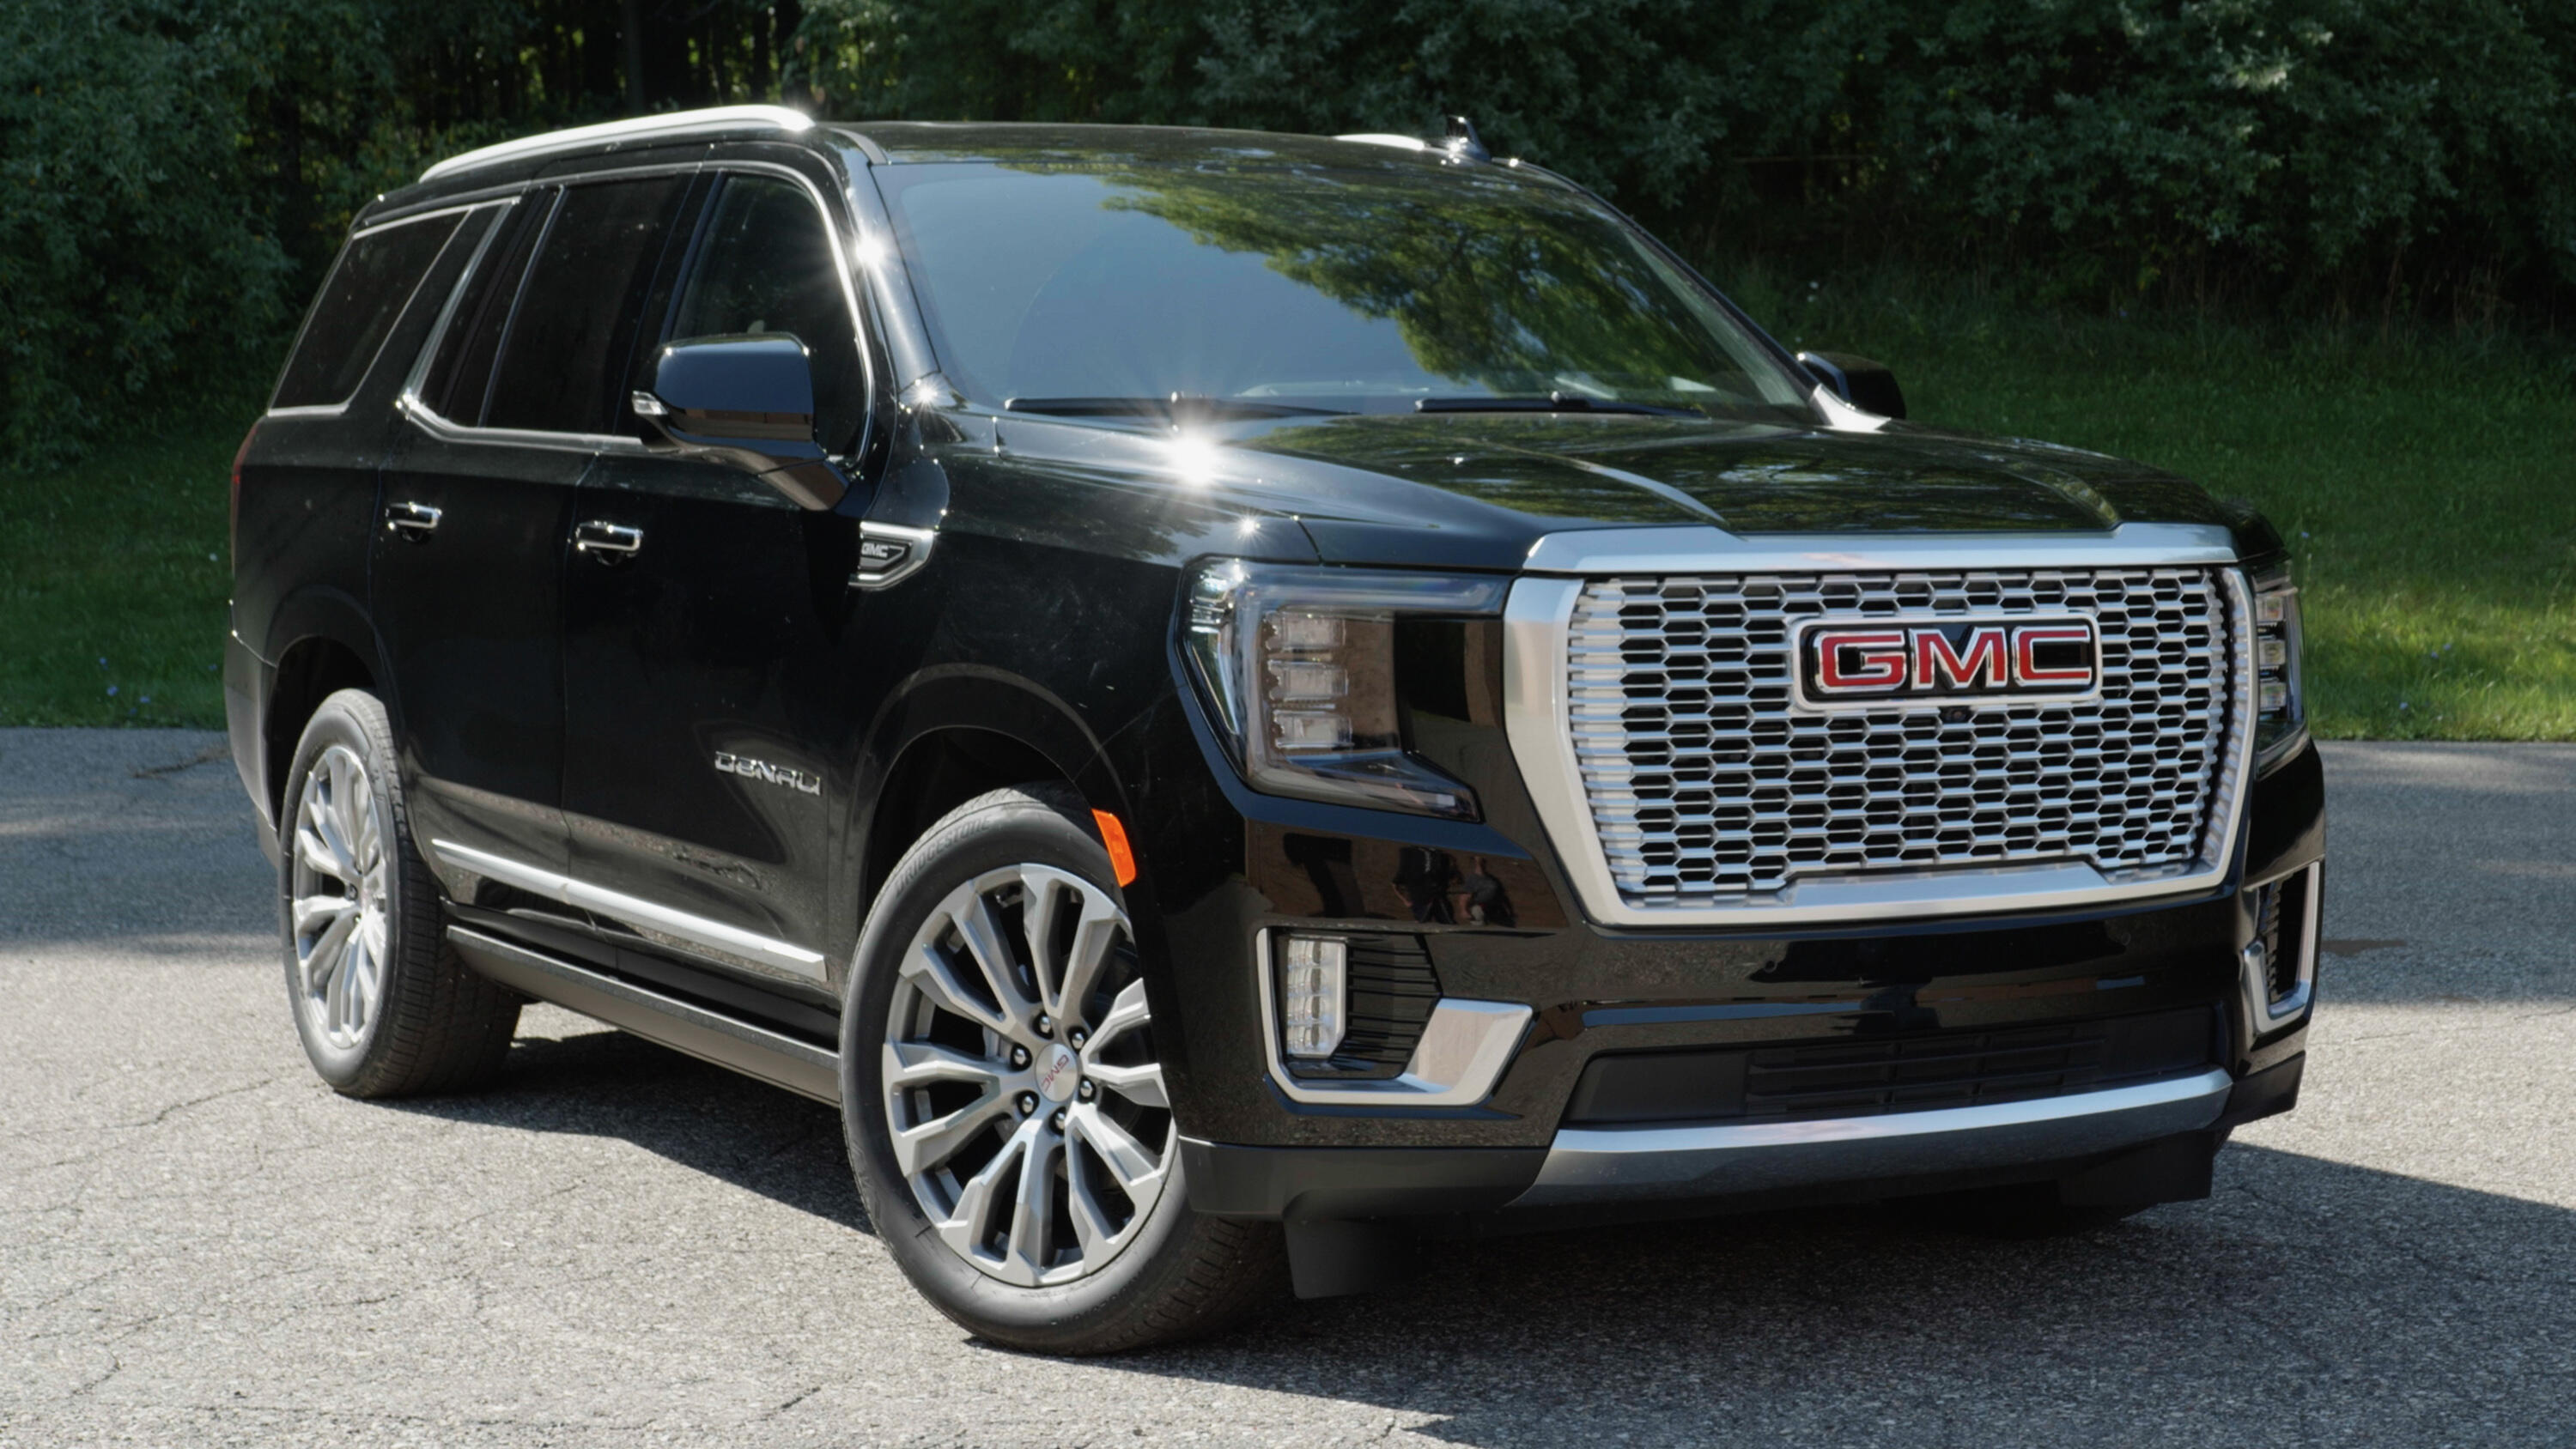 Video: The 2021 GMC Yukon Denali is so much better